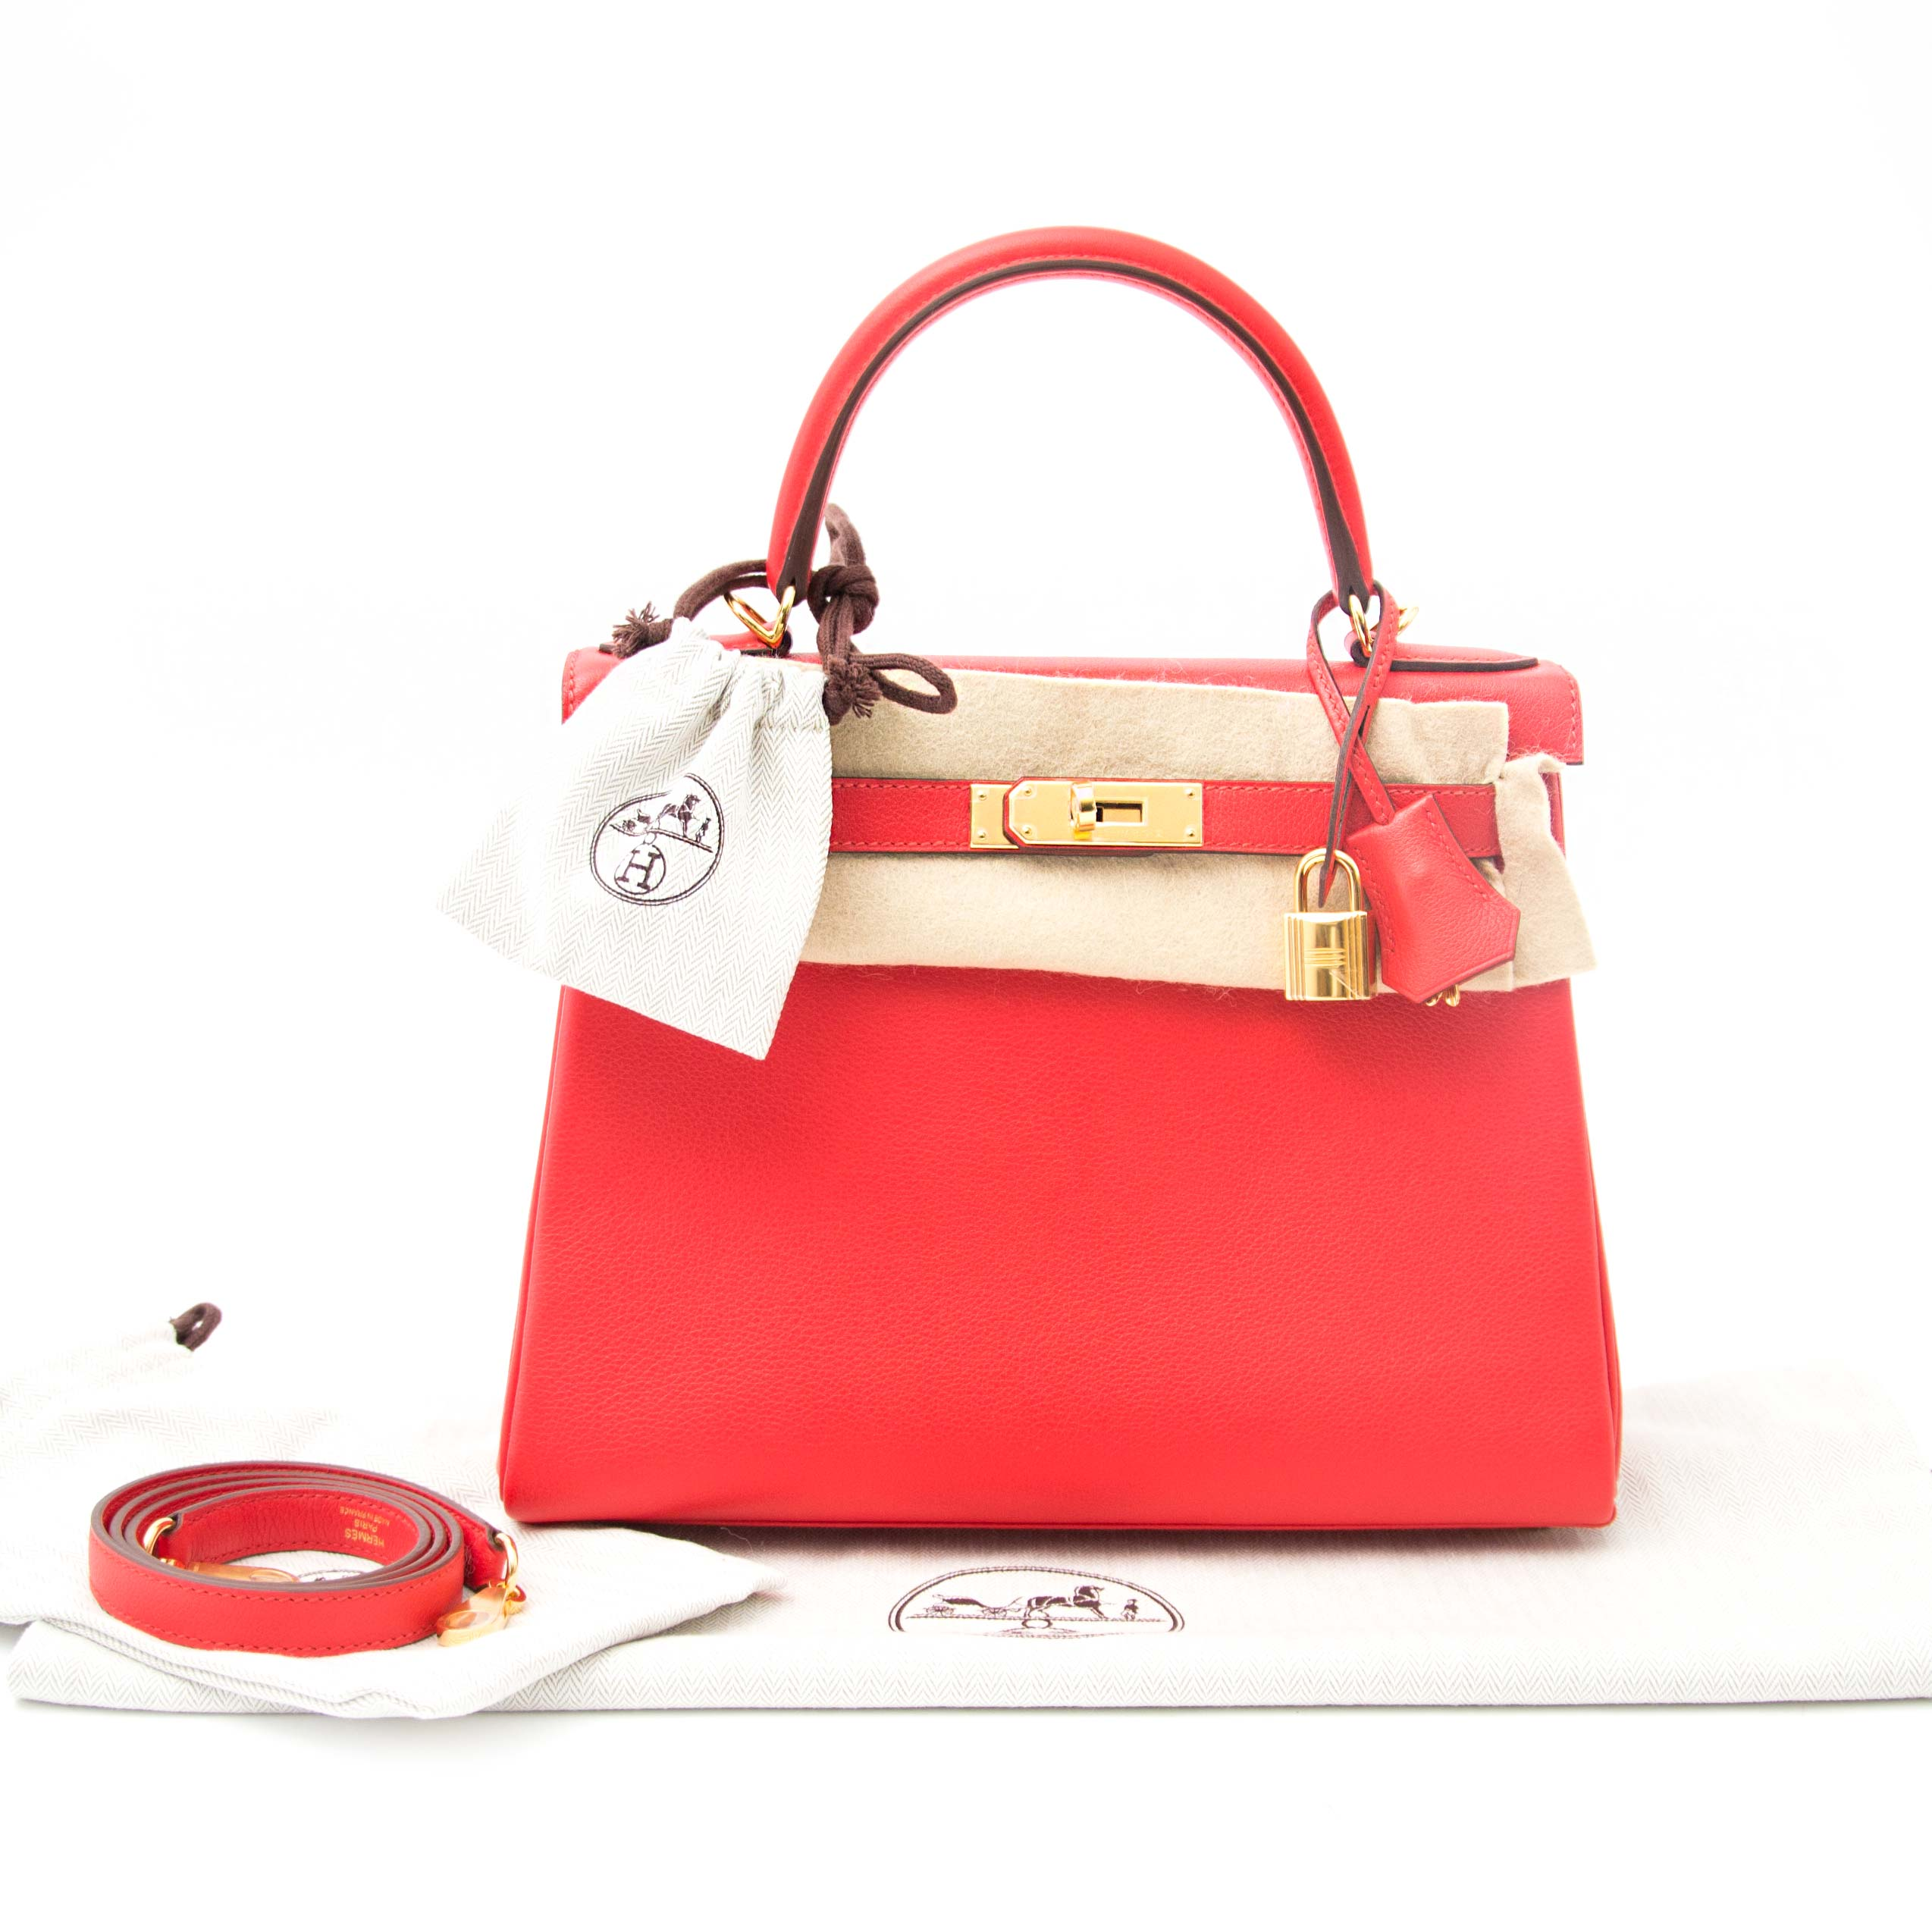 189556a6b1b1 ... shop safe online at the best price your Hermes Kelly 28 Cappucine  Evercolor